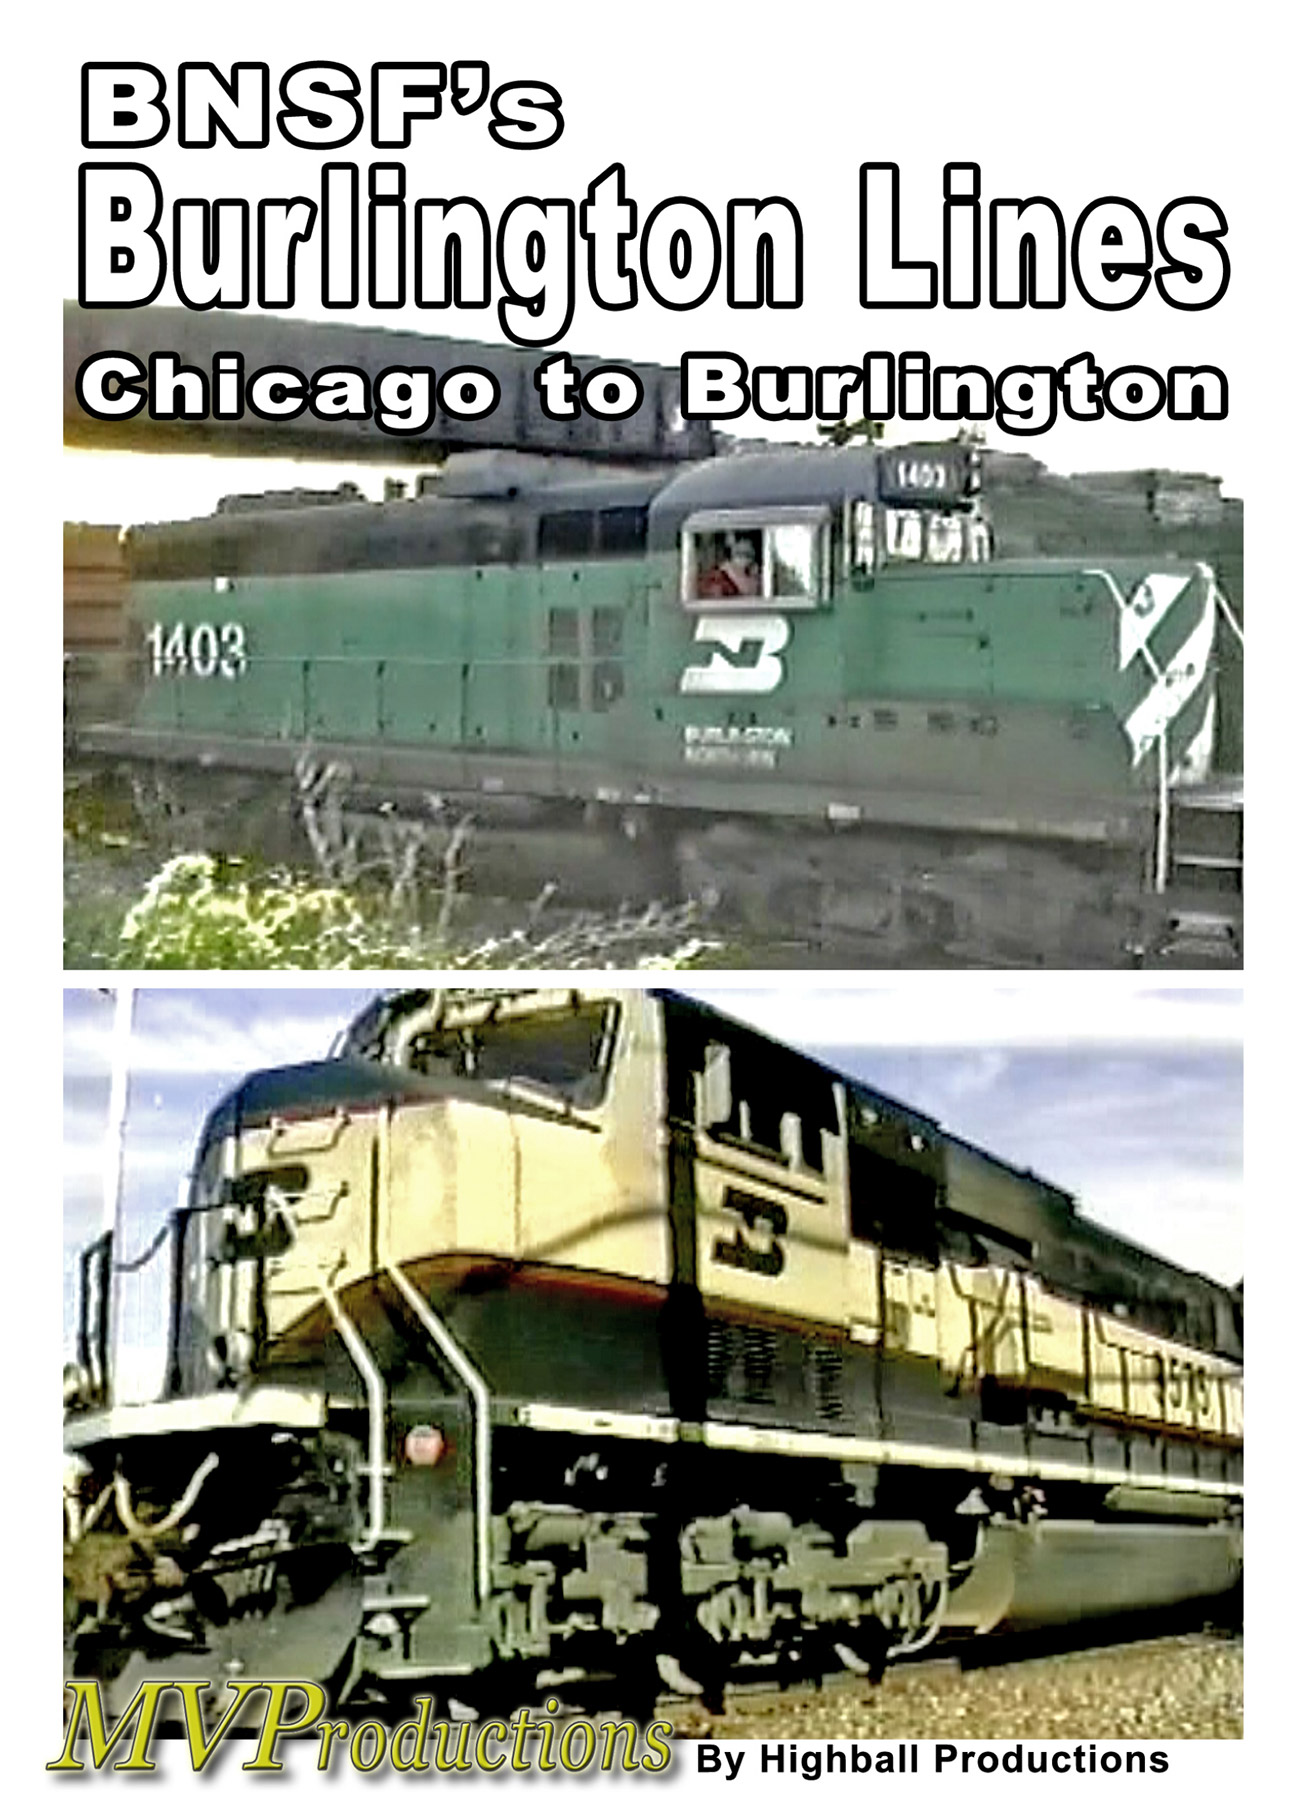 BNSF Burlington Lines Train Video Midwest Video Productions MVBBL 601577880097